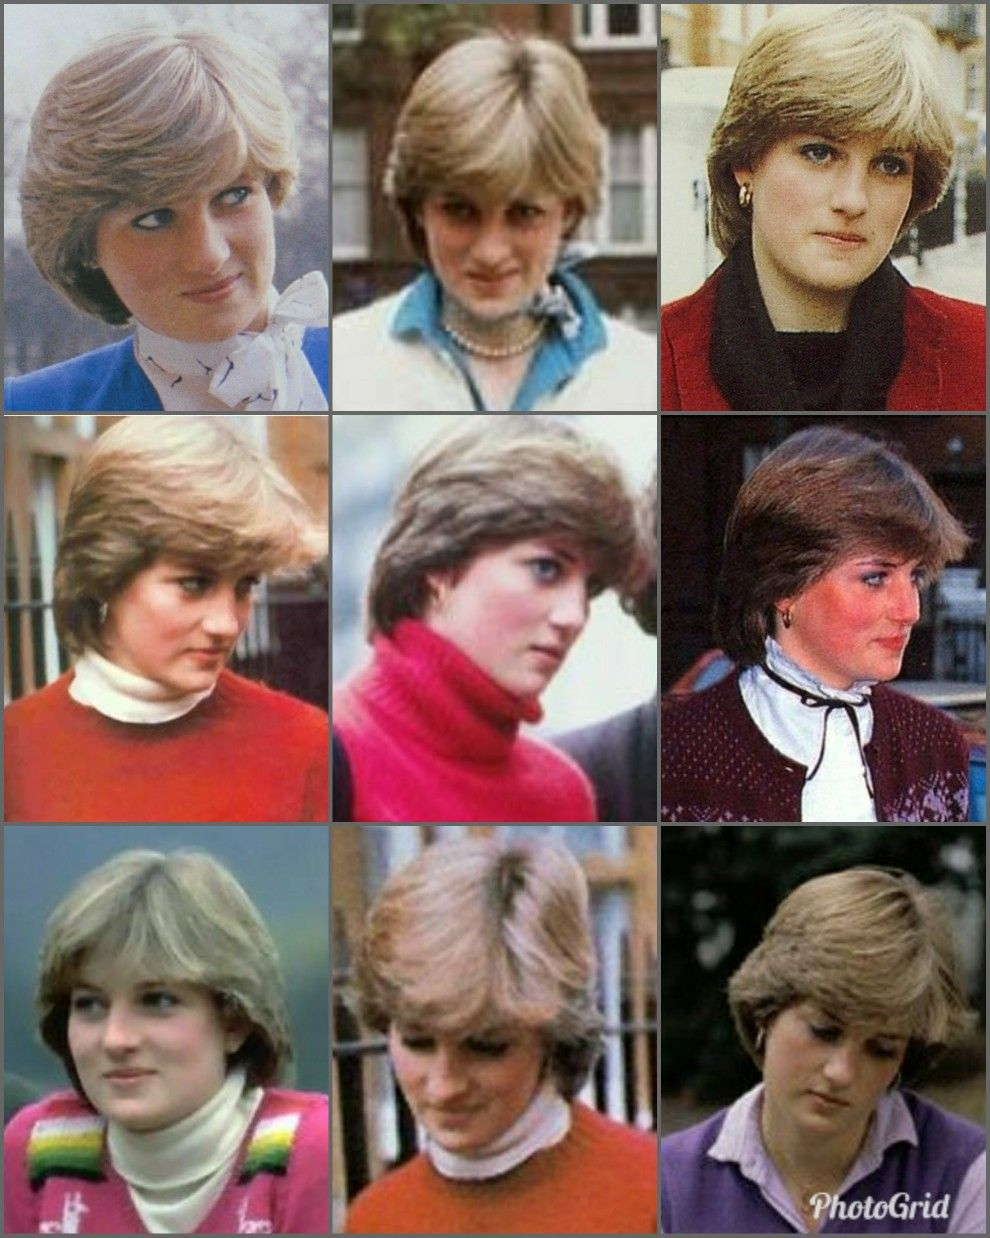 beautiful young lady princes diana lady diana princess diana pictures beautiful young lady princes diana